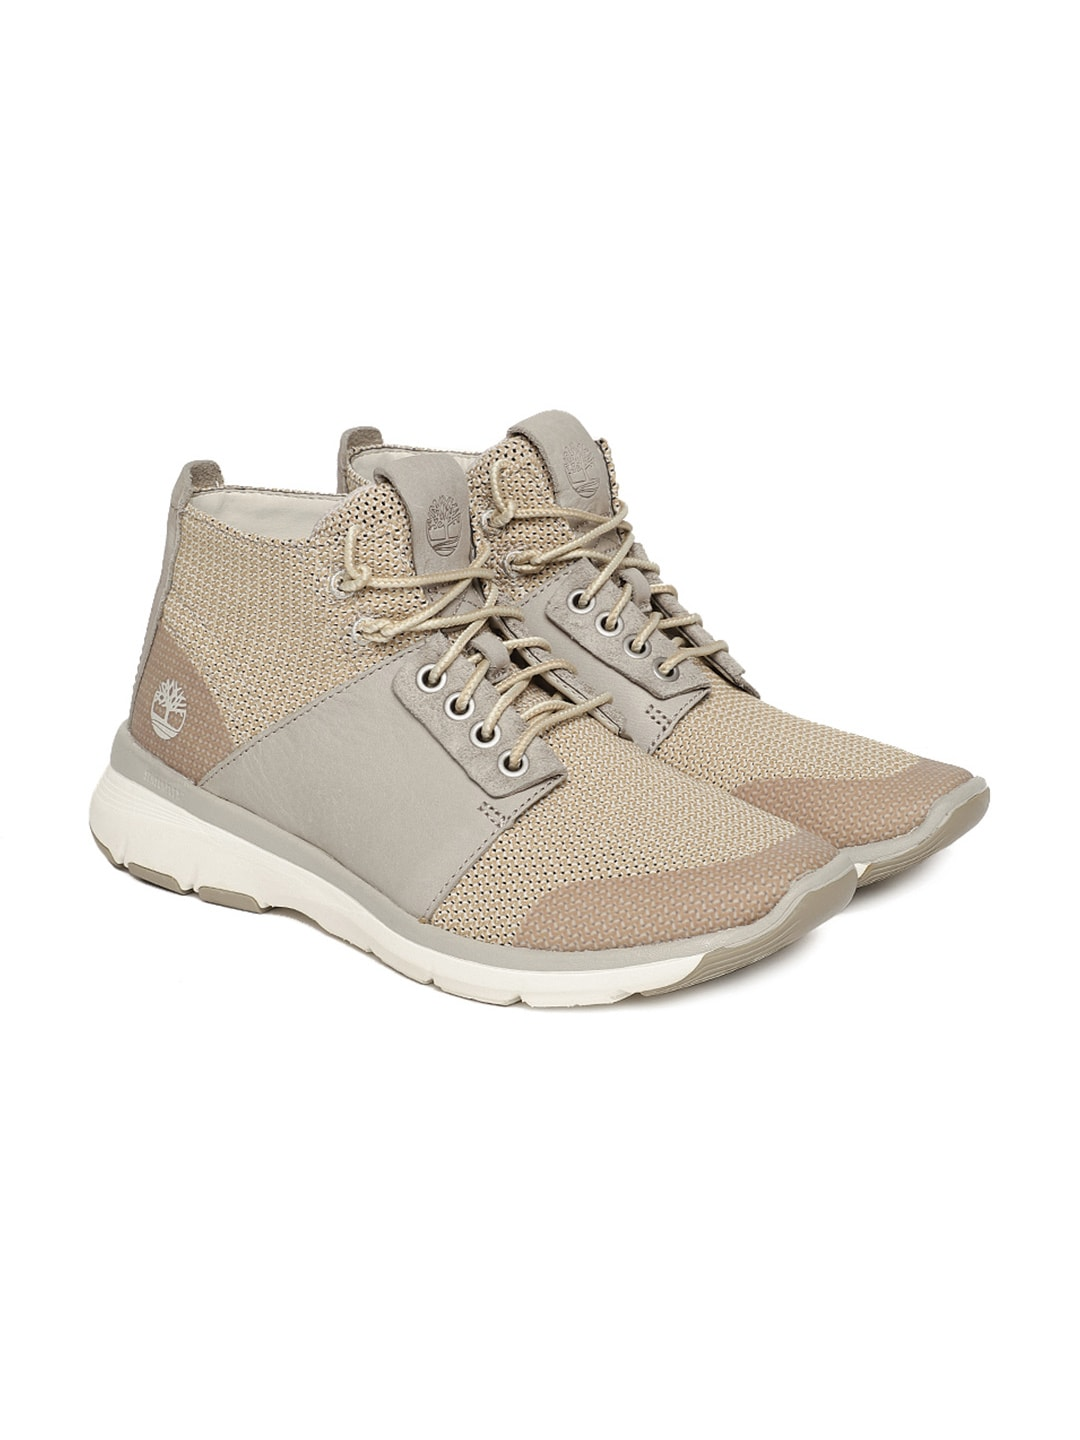 ca60292982c9 Casual Shoes For Men - Buy Casual   Flat Shoes For Men